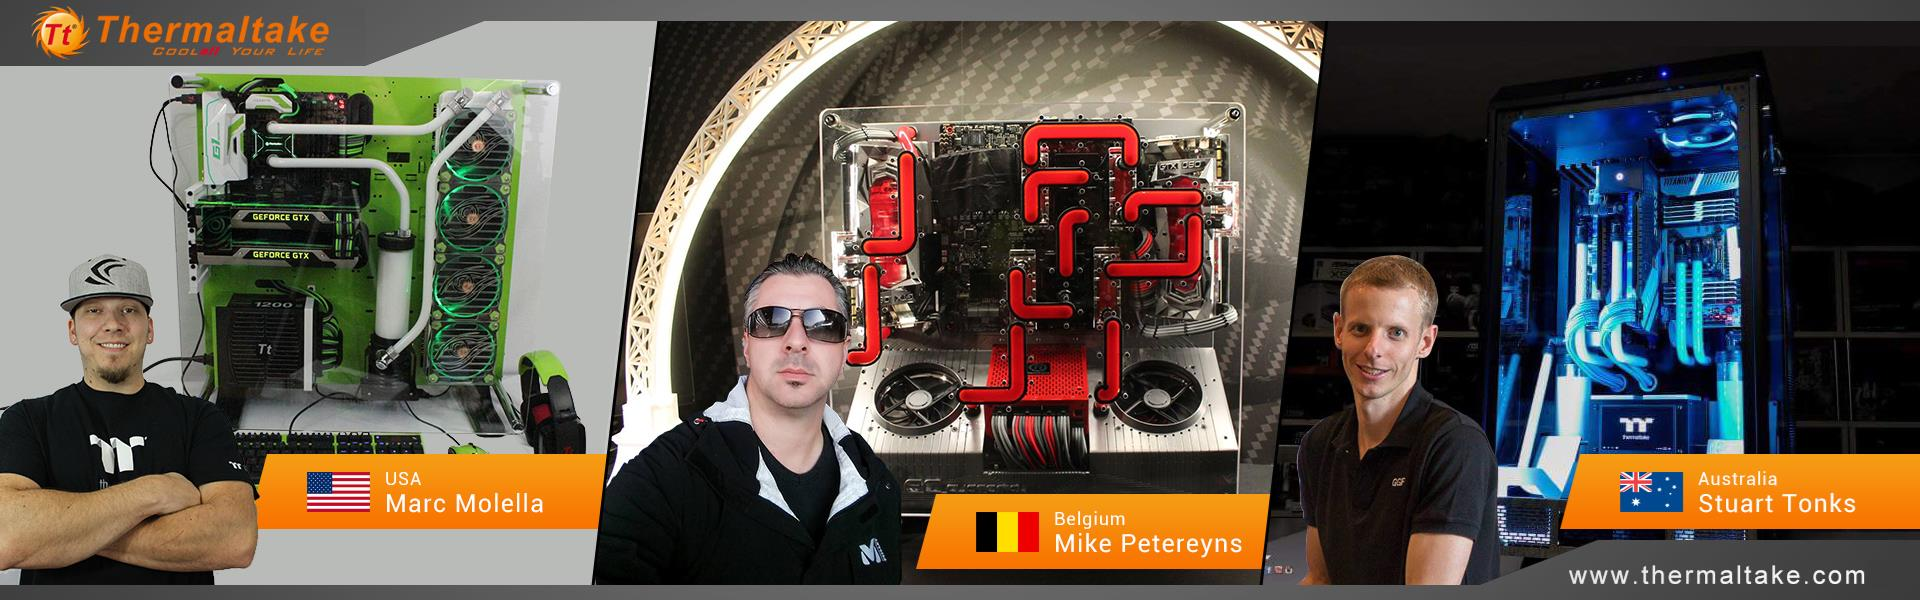 thermaltake-casemod-masterpieces-by-three-top-modding-artists-copy